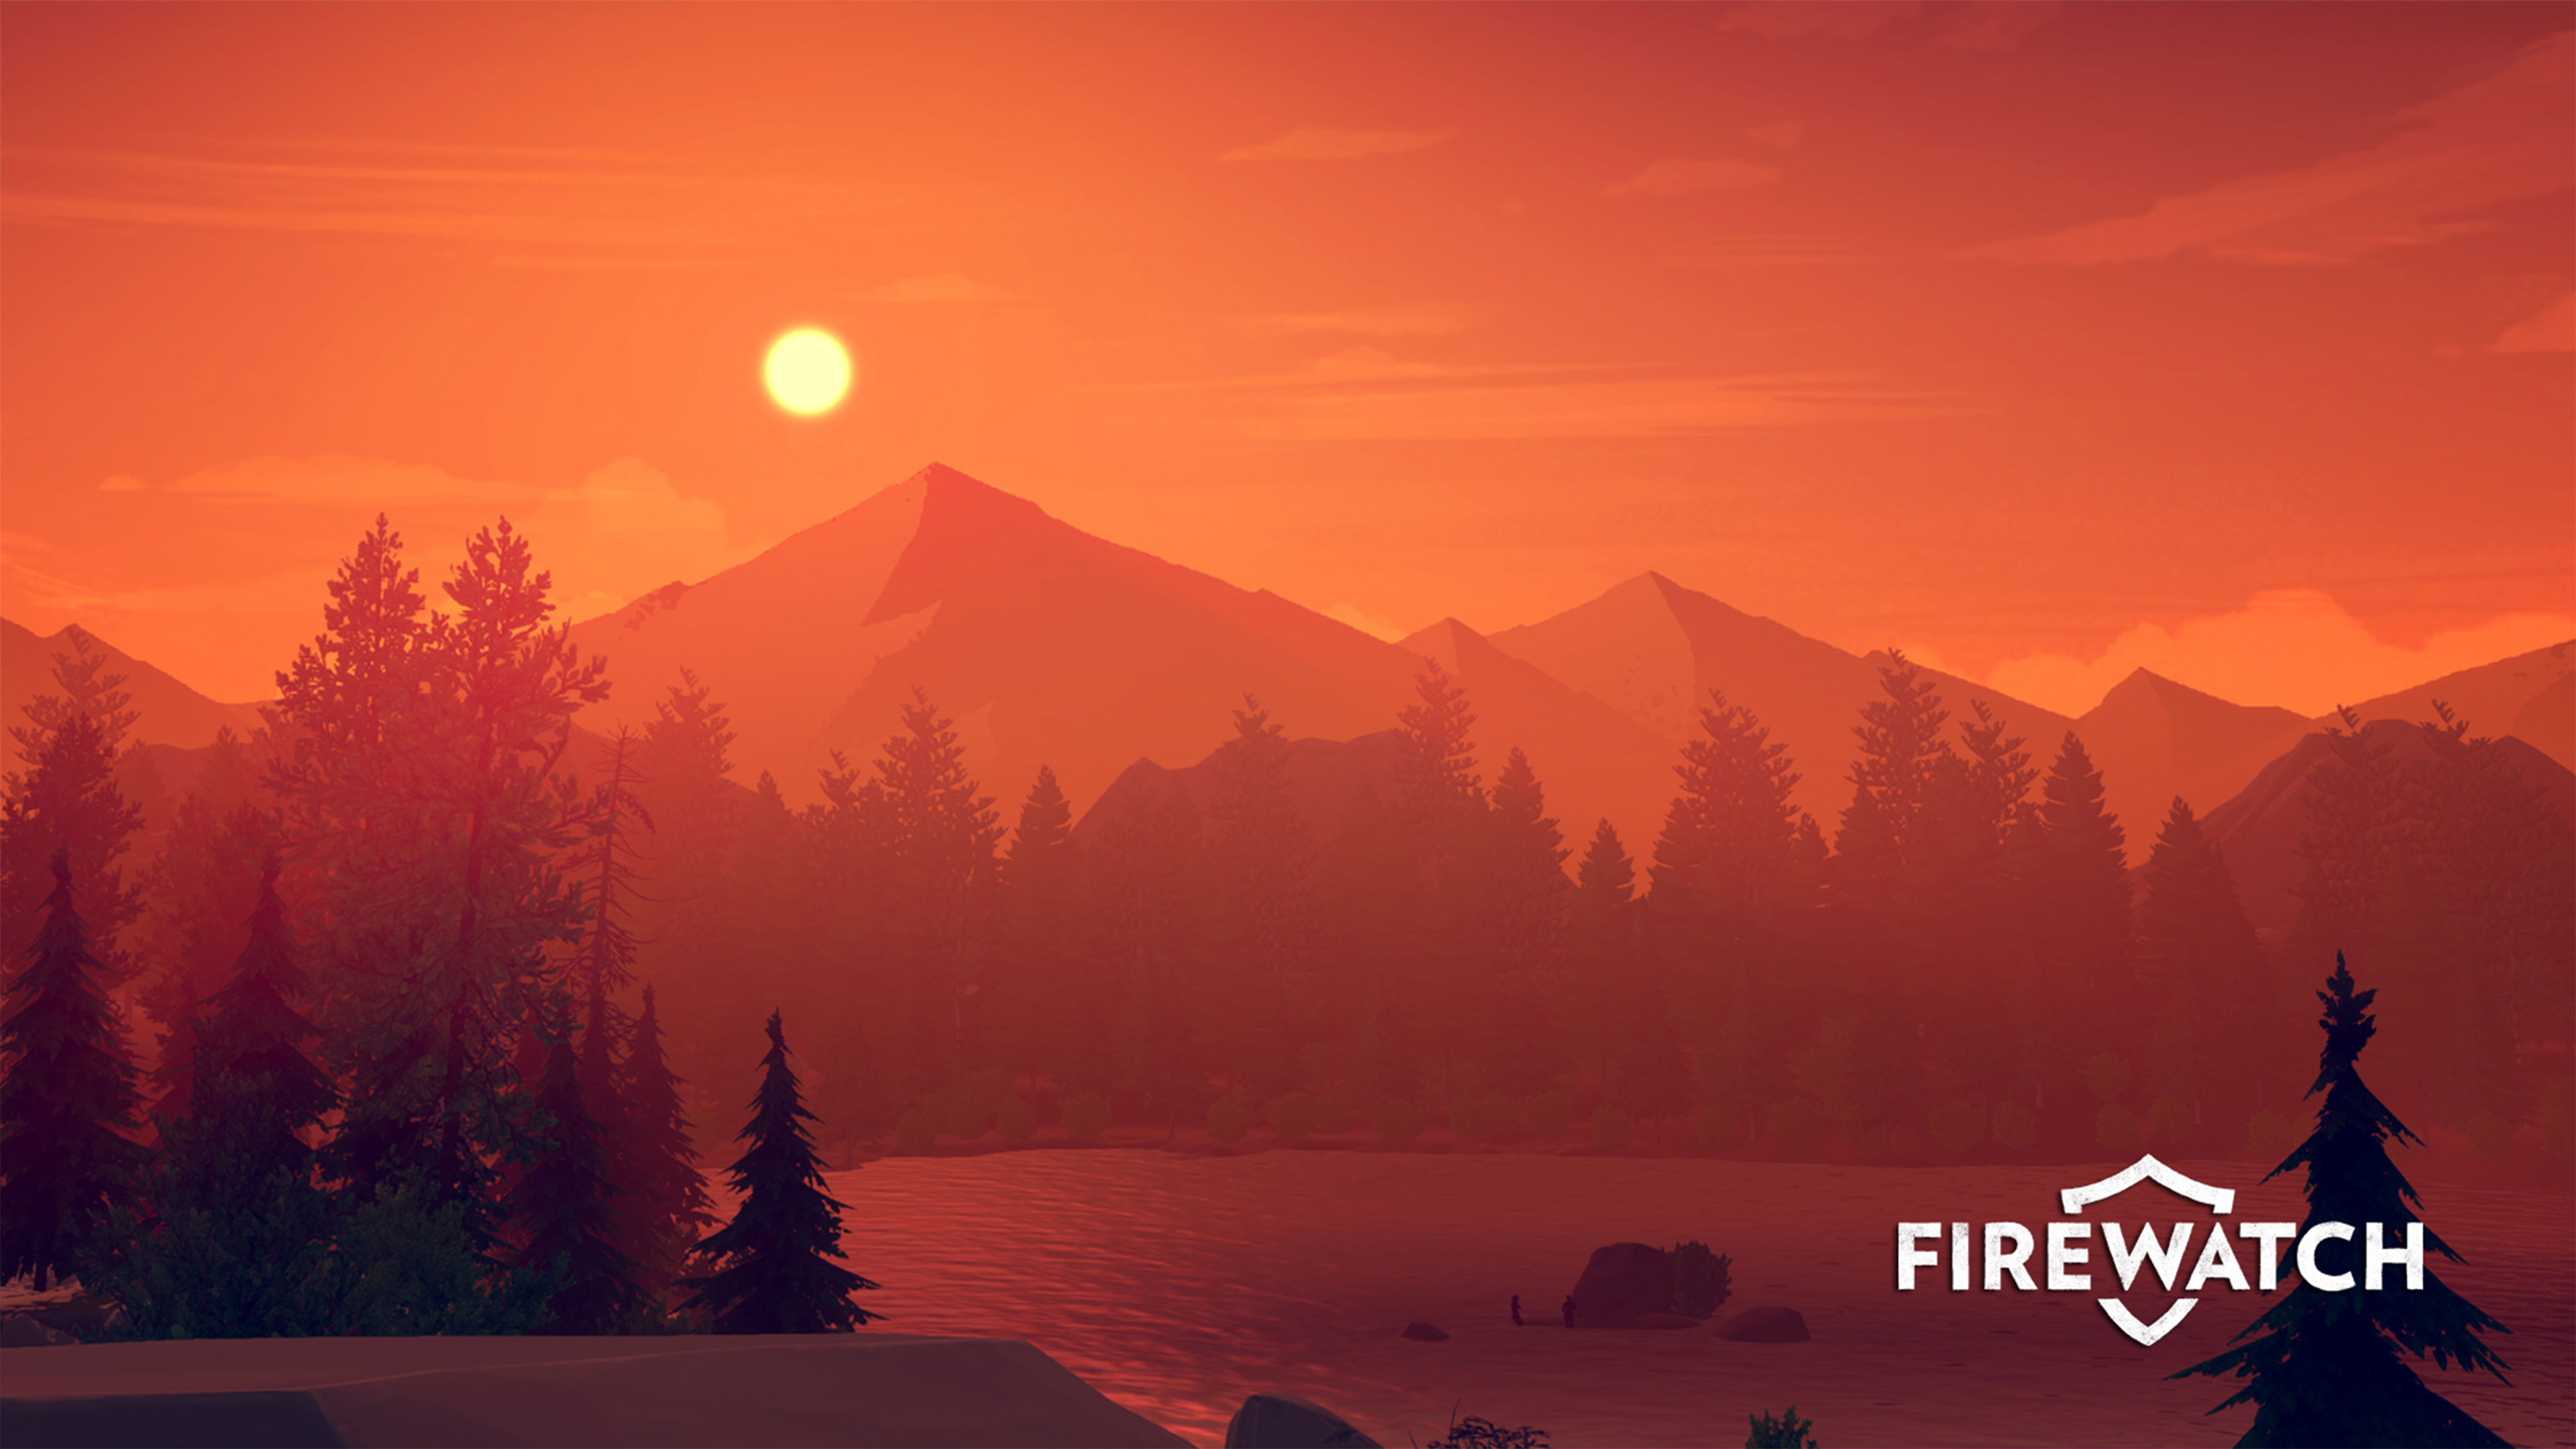 4k Hd Wallapaper: Firewatch Wallpapers In Ultra HD